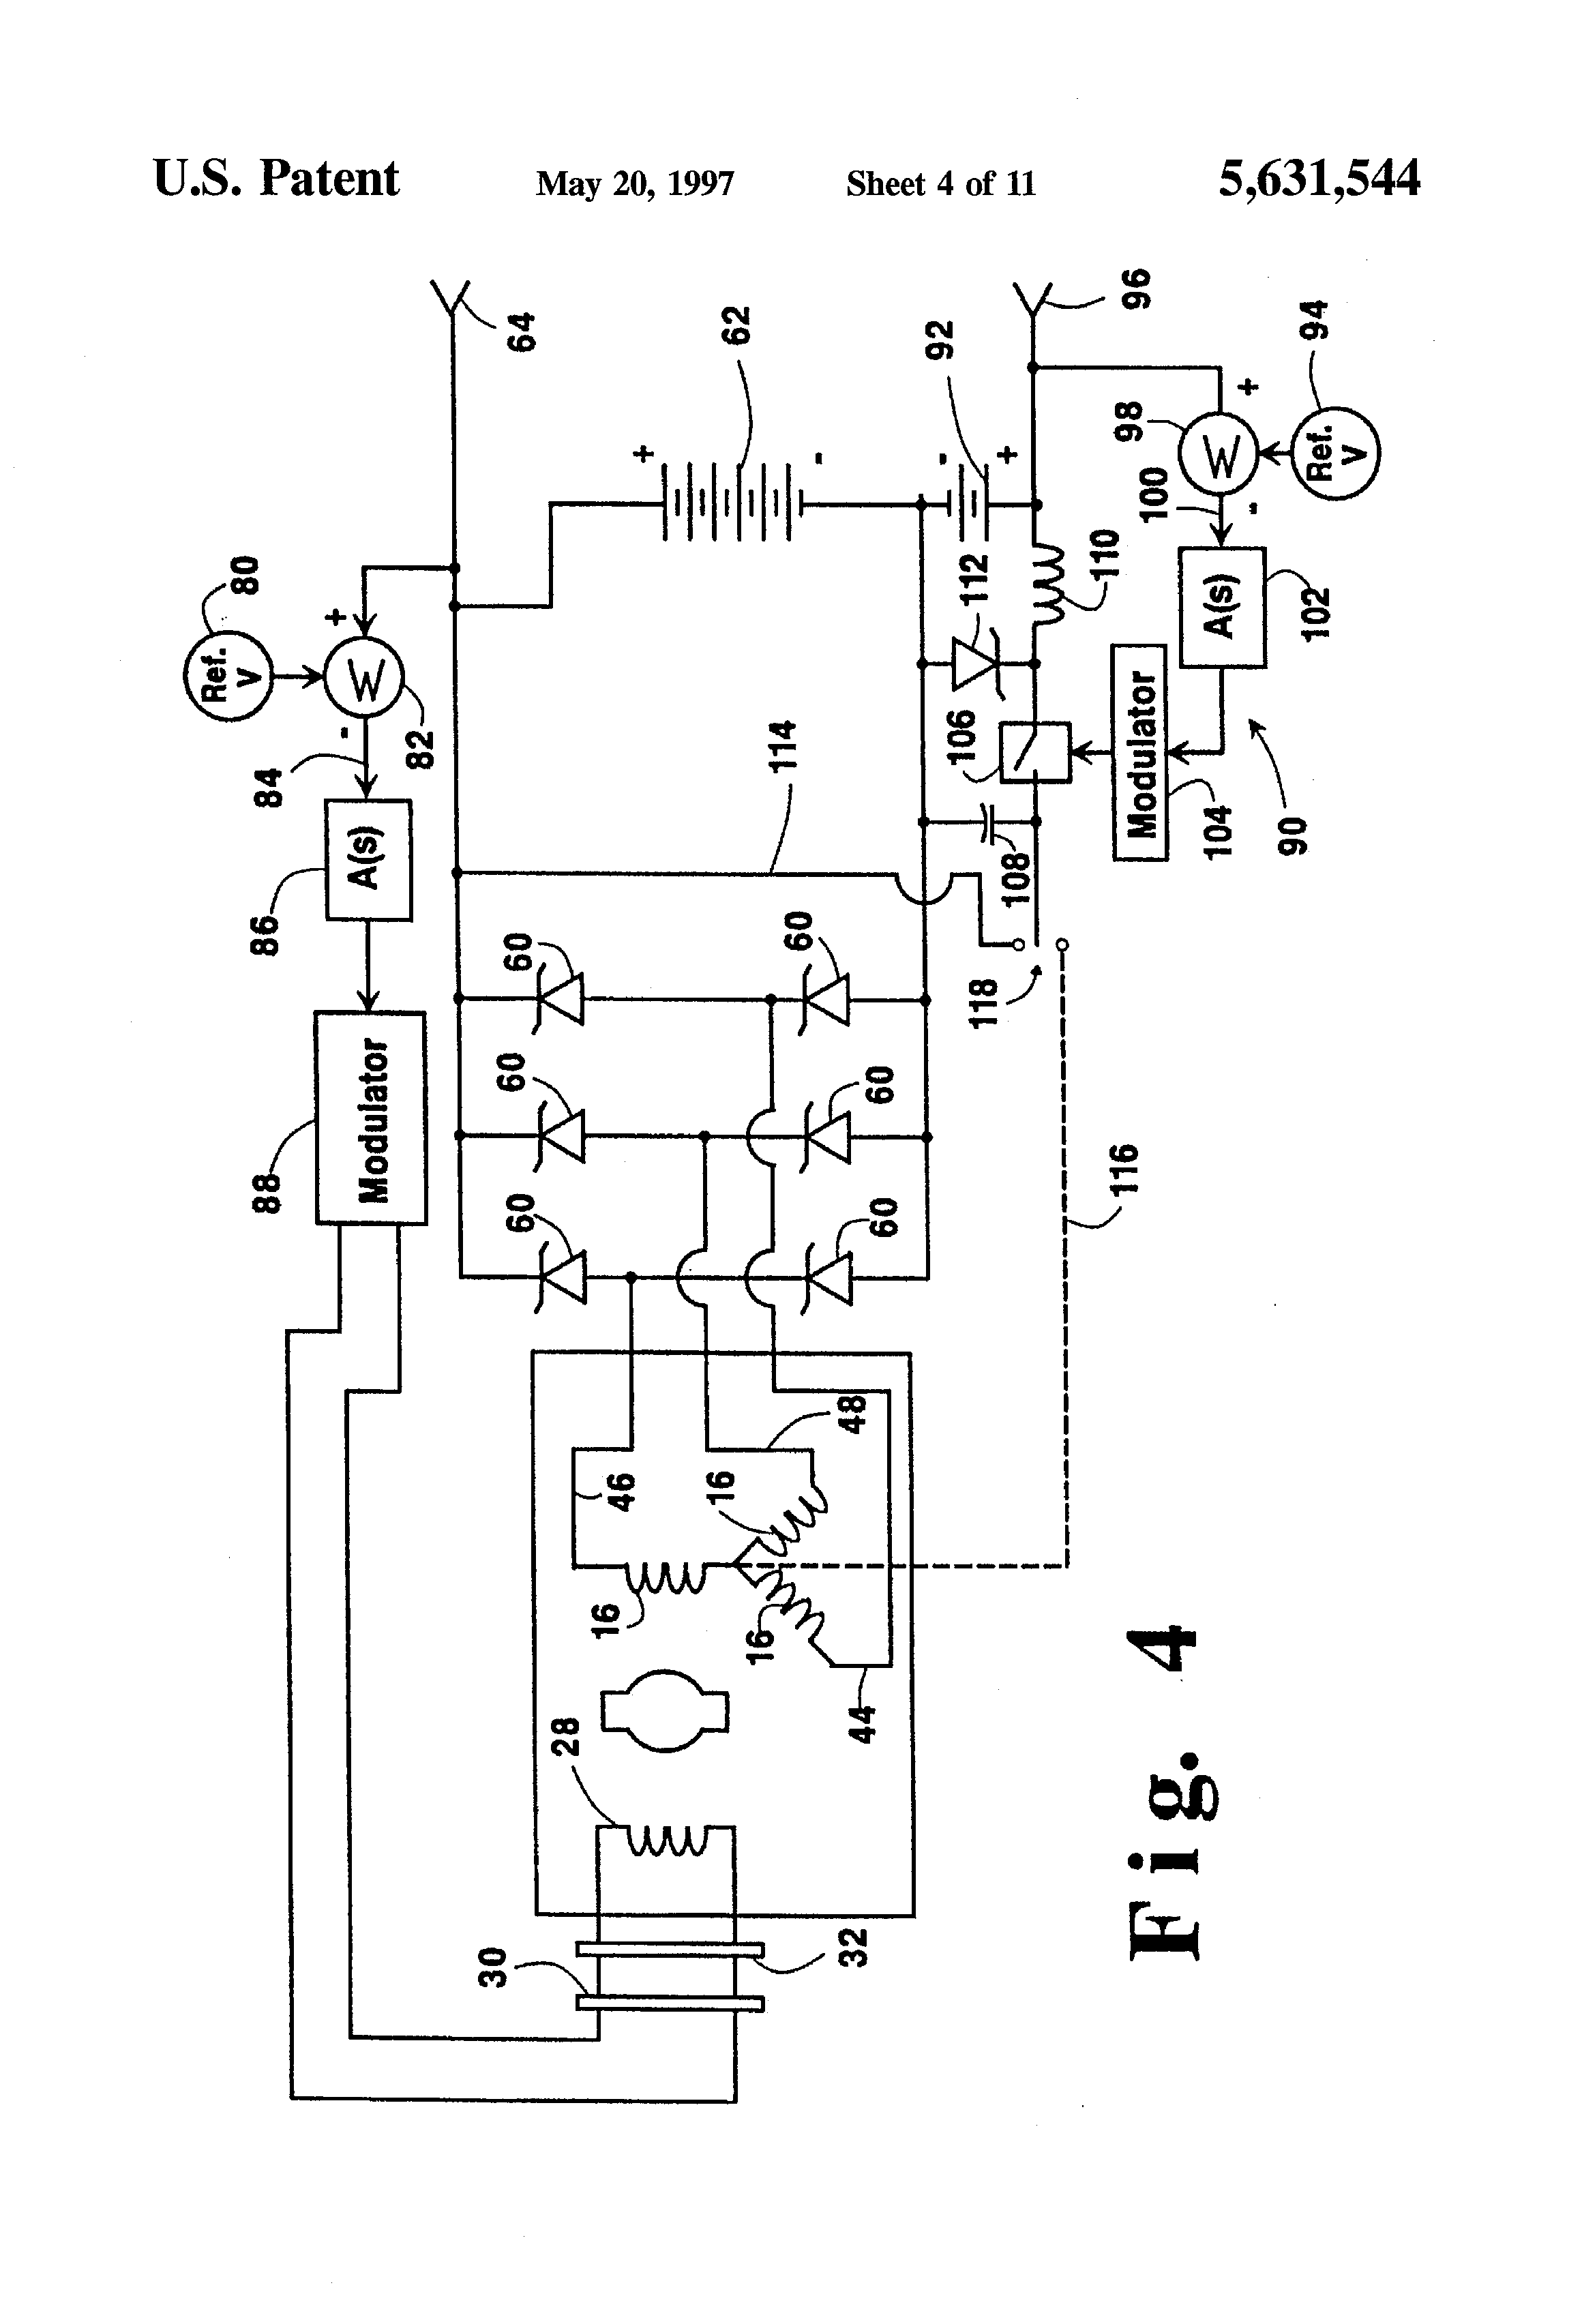 denso 12v alternator wiring diagram amp research patent us5631544 hybrid with voltage